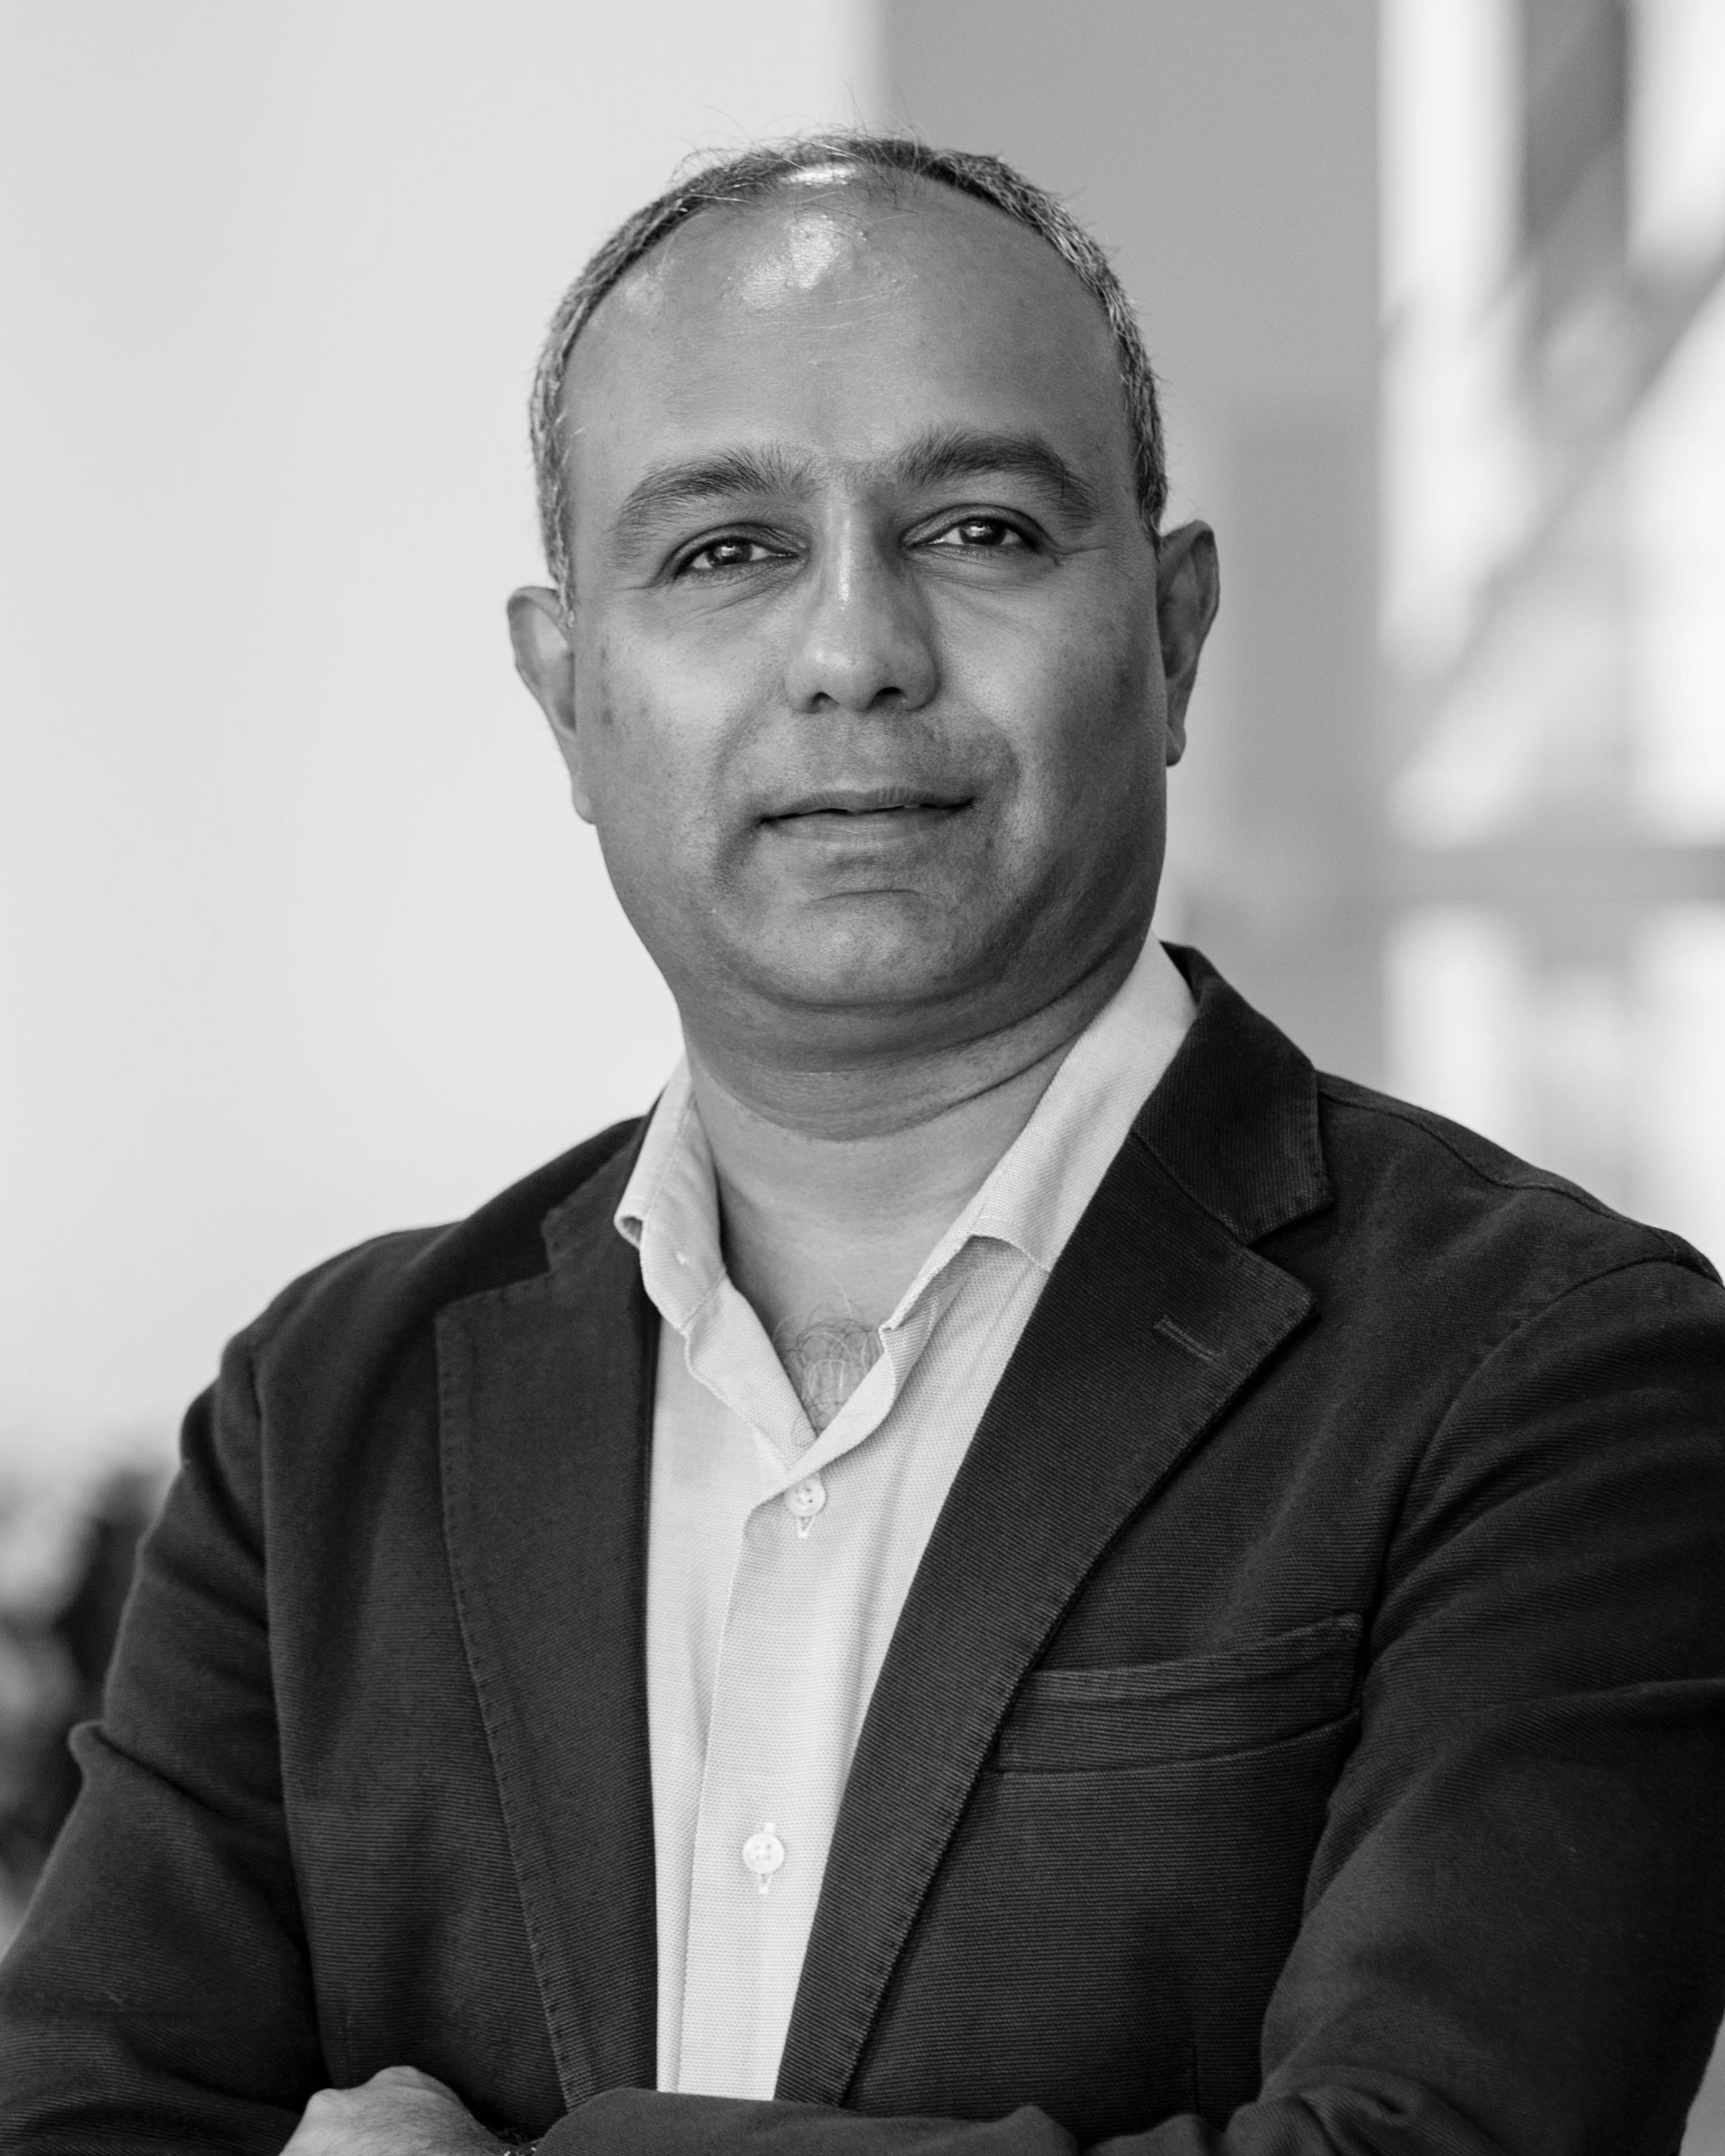 Arvind Sethumadhavan, Chief Strategy & Innovation Officer, Dentsu Aegis Network Asia Pacific